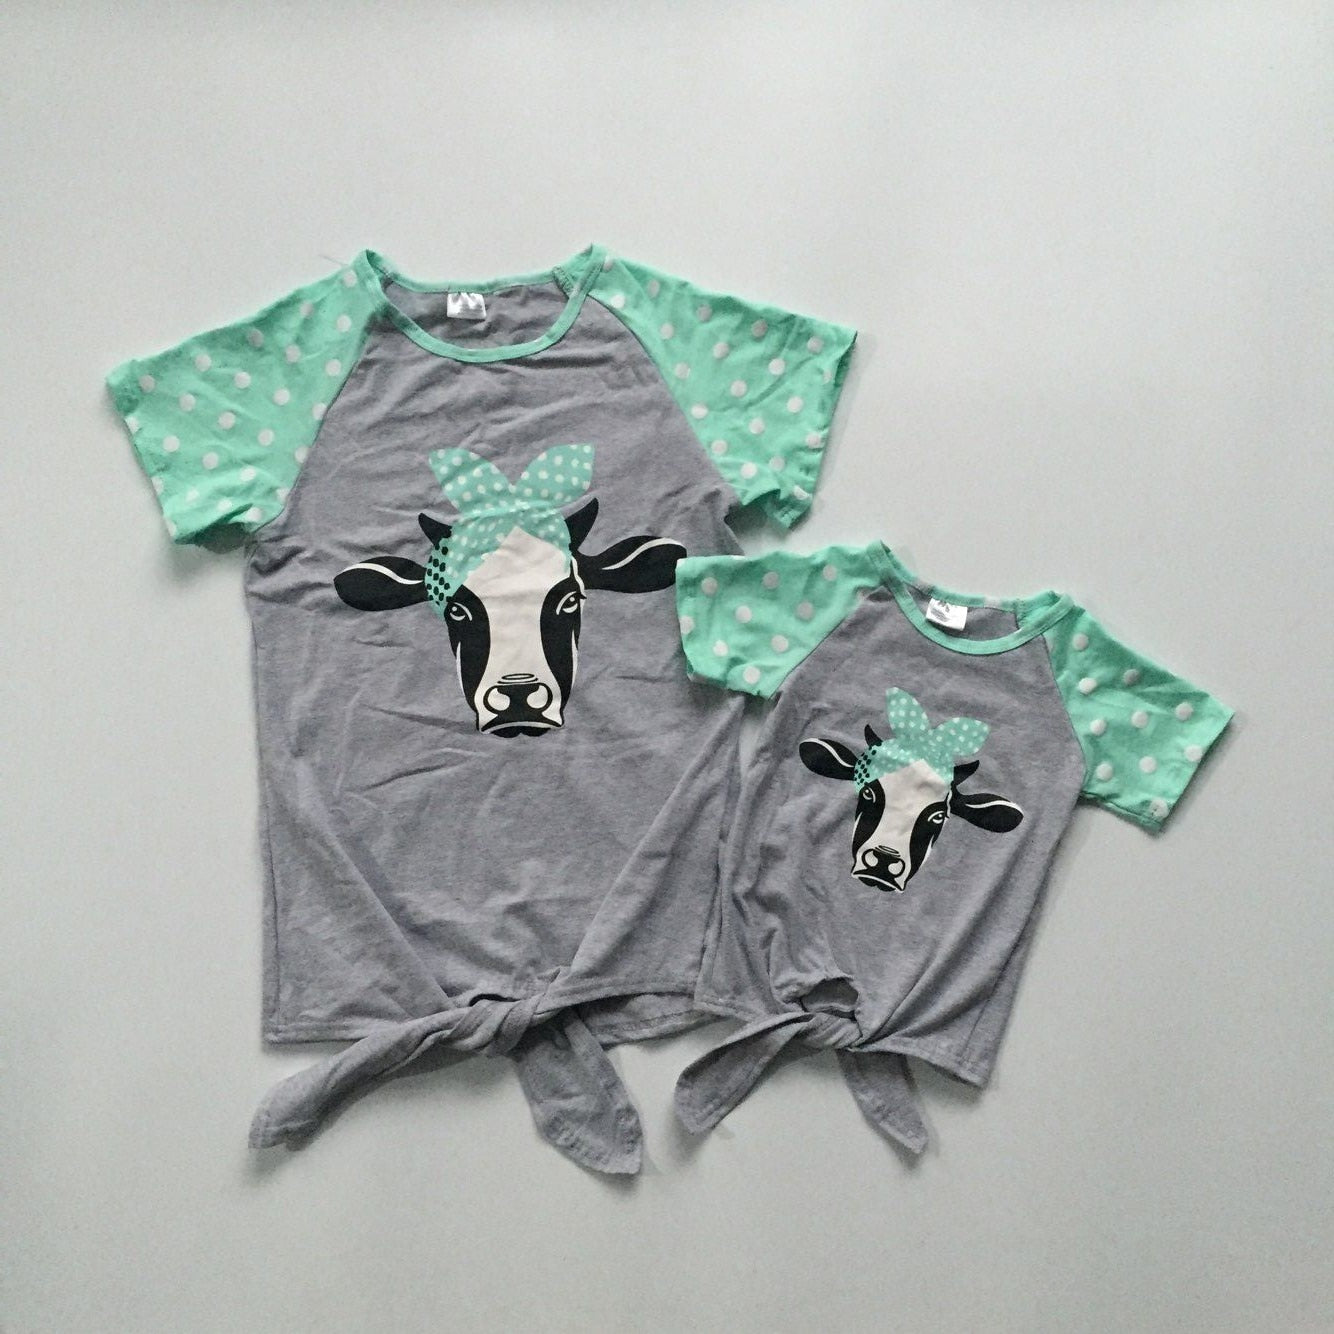 Mommy and baby girls clothes summer T-shirts grey shirts with cow head green sleeve shirts baby and mom clothes mommy me shirts